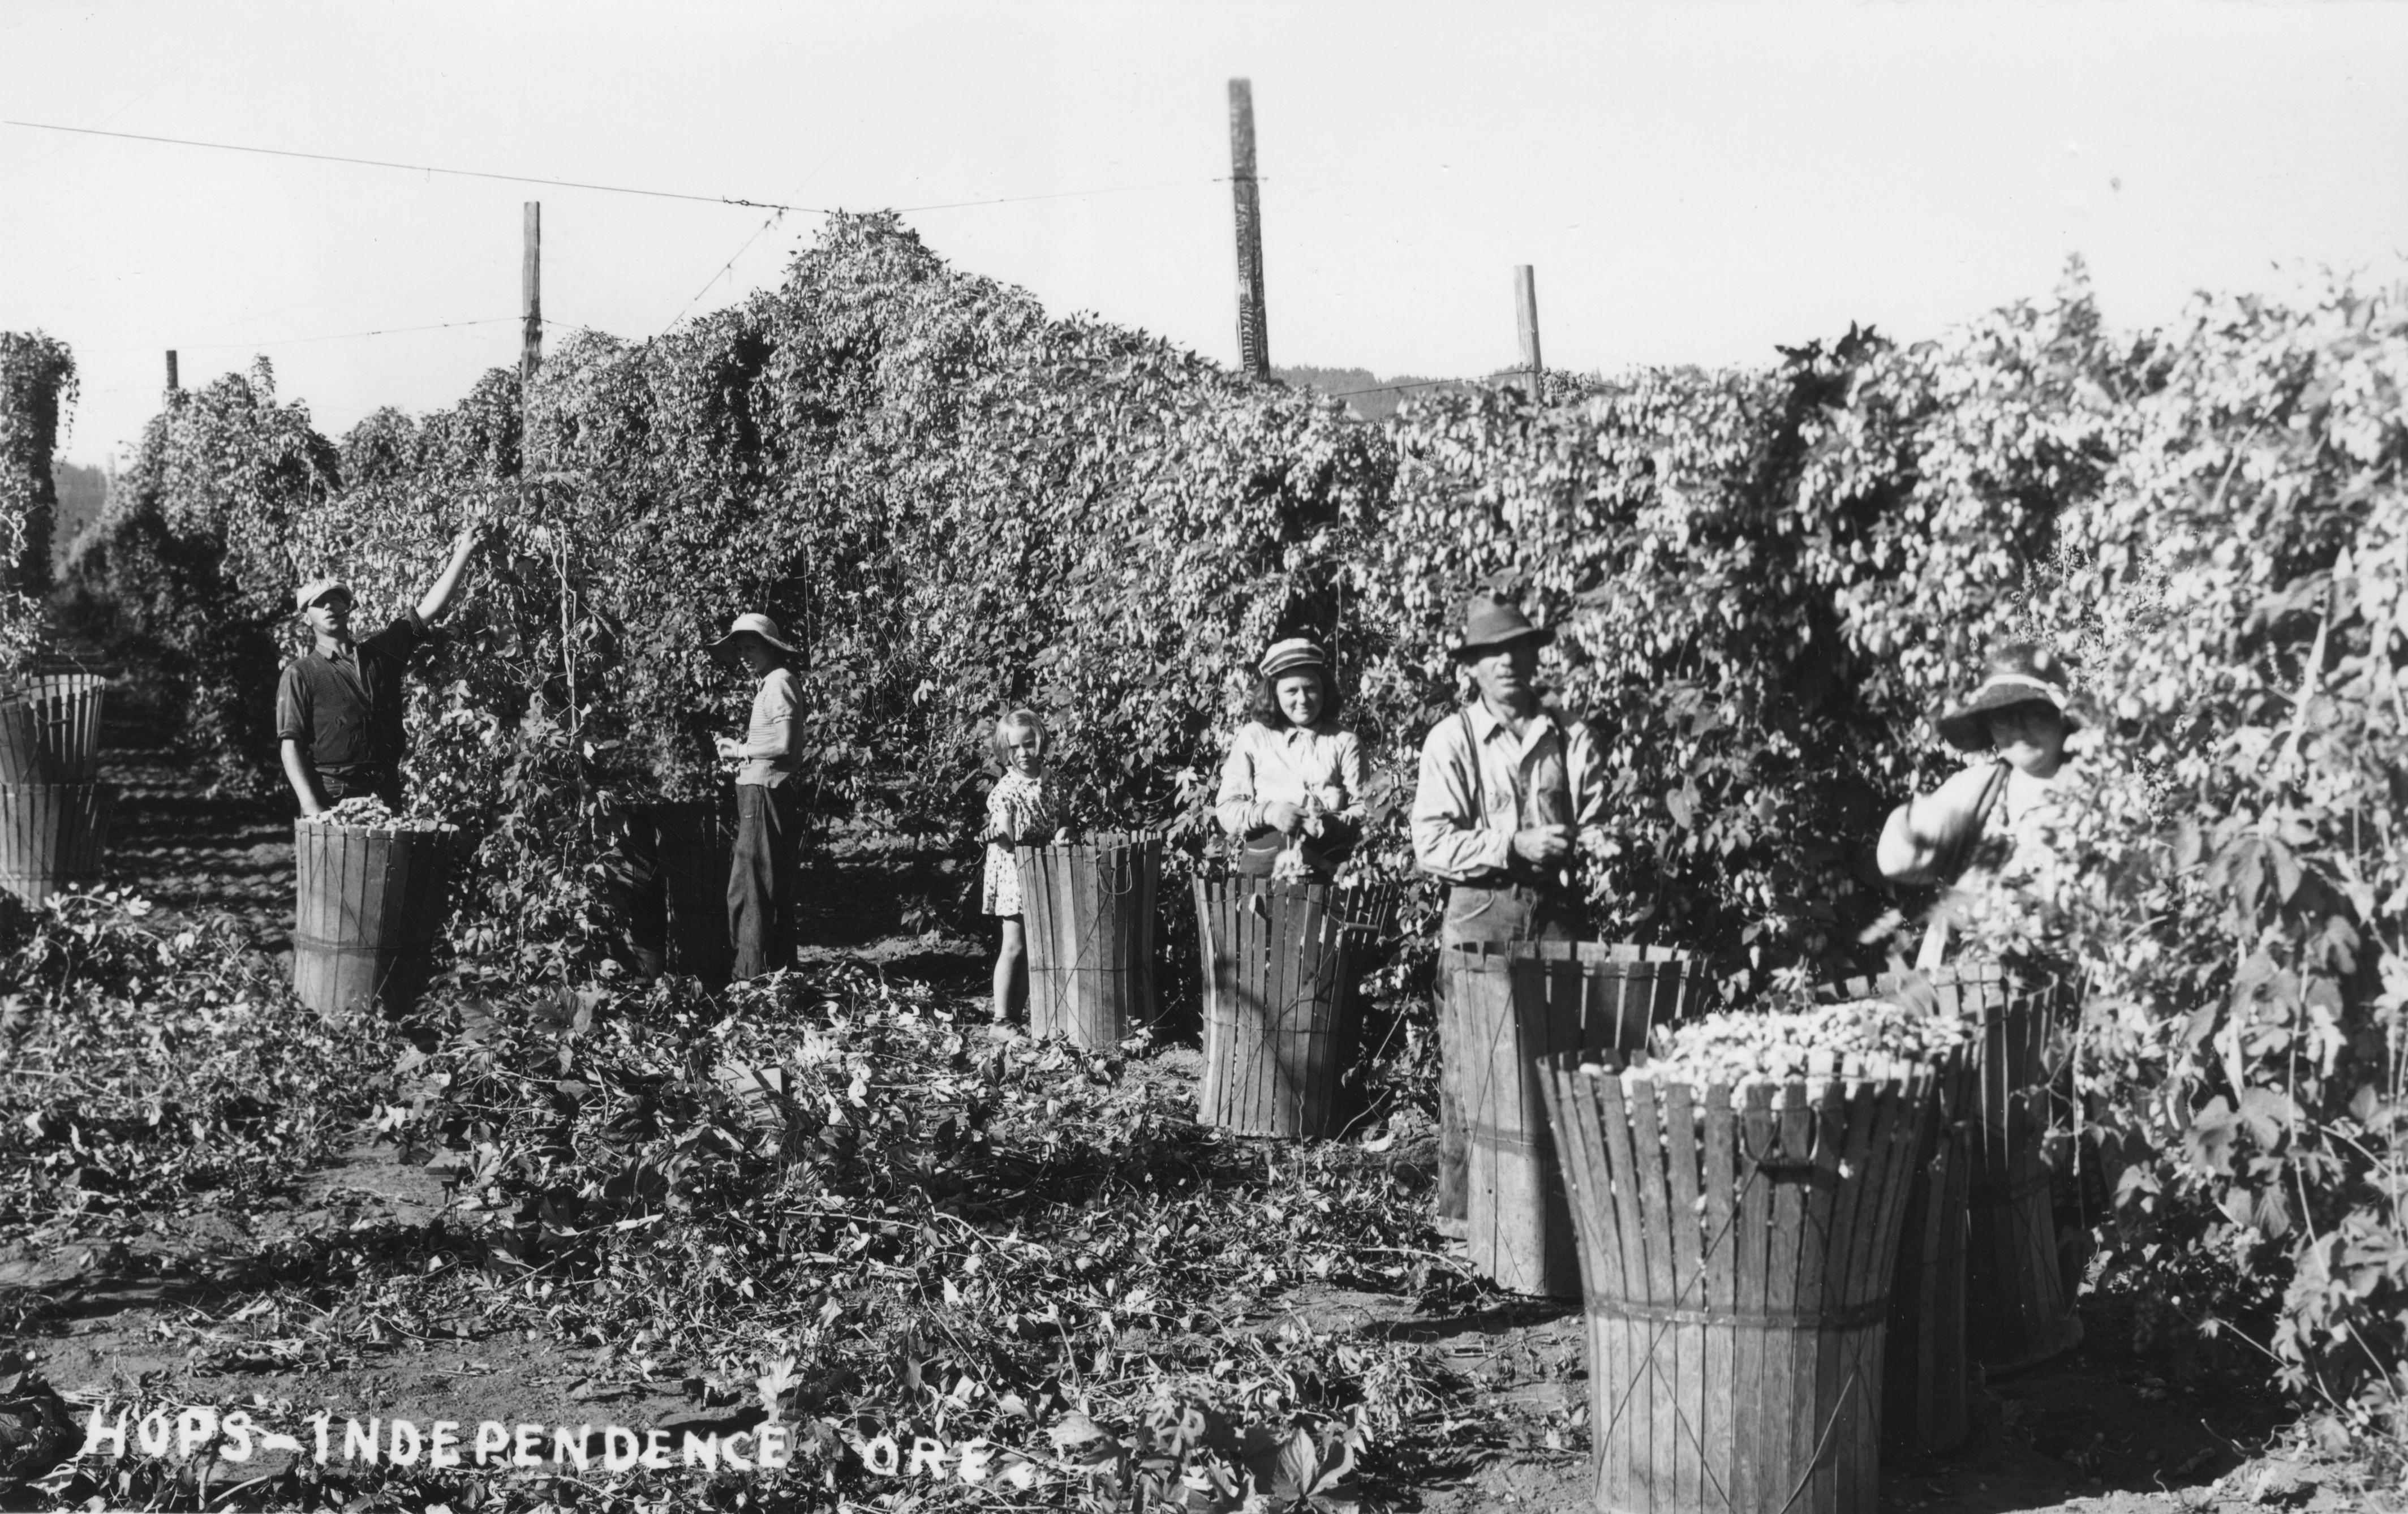 Harvesting hops near Independence, Oregon. ca. 1940; public domain image courtesy of Wikimedia Commons.